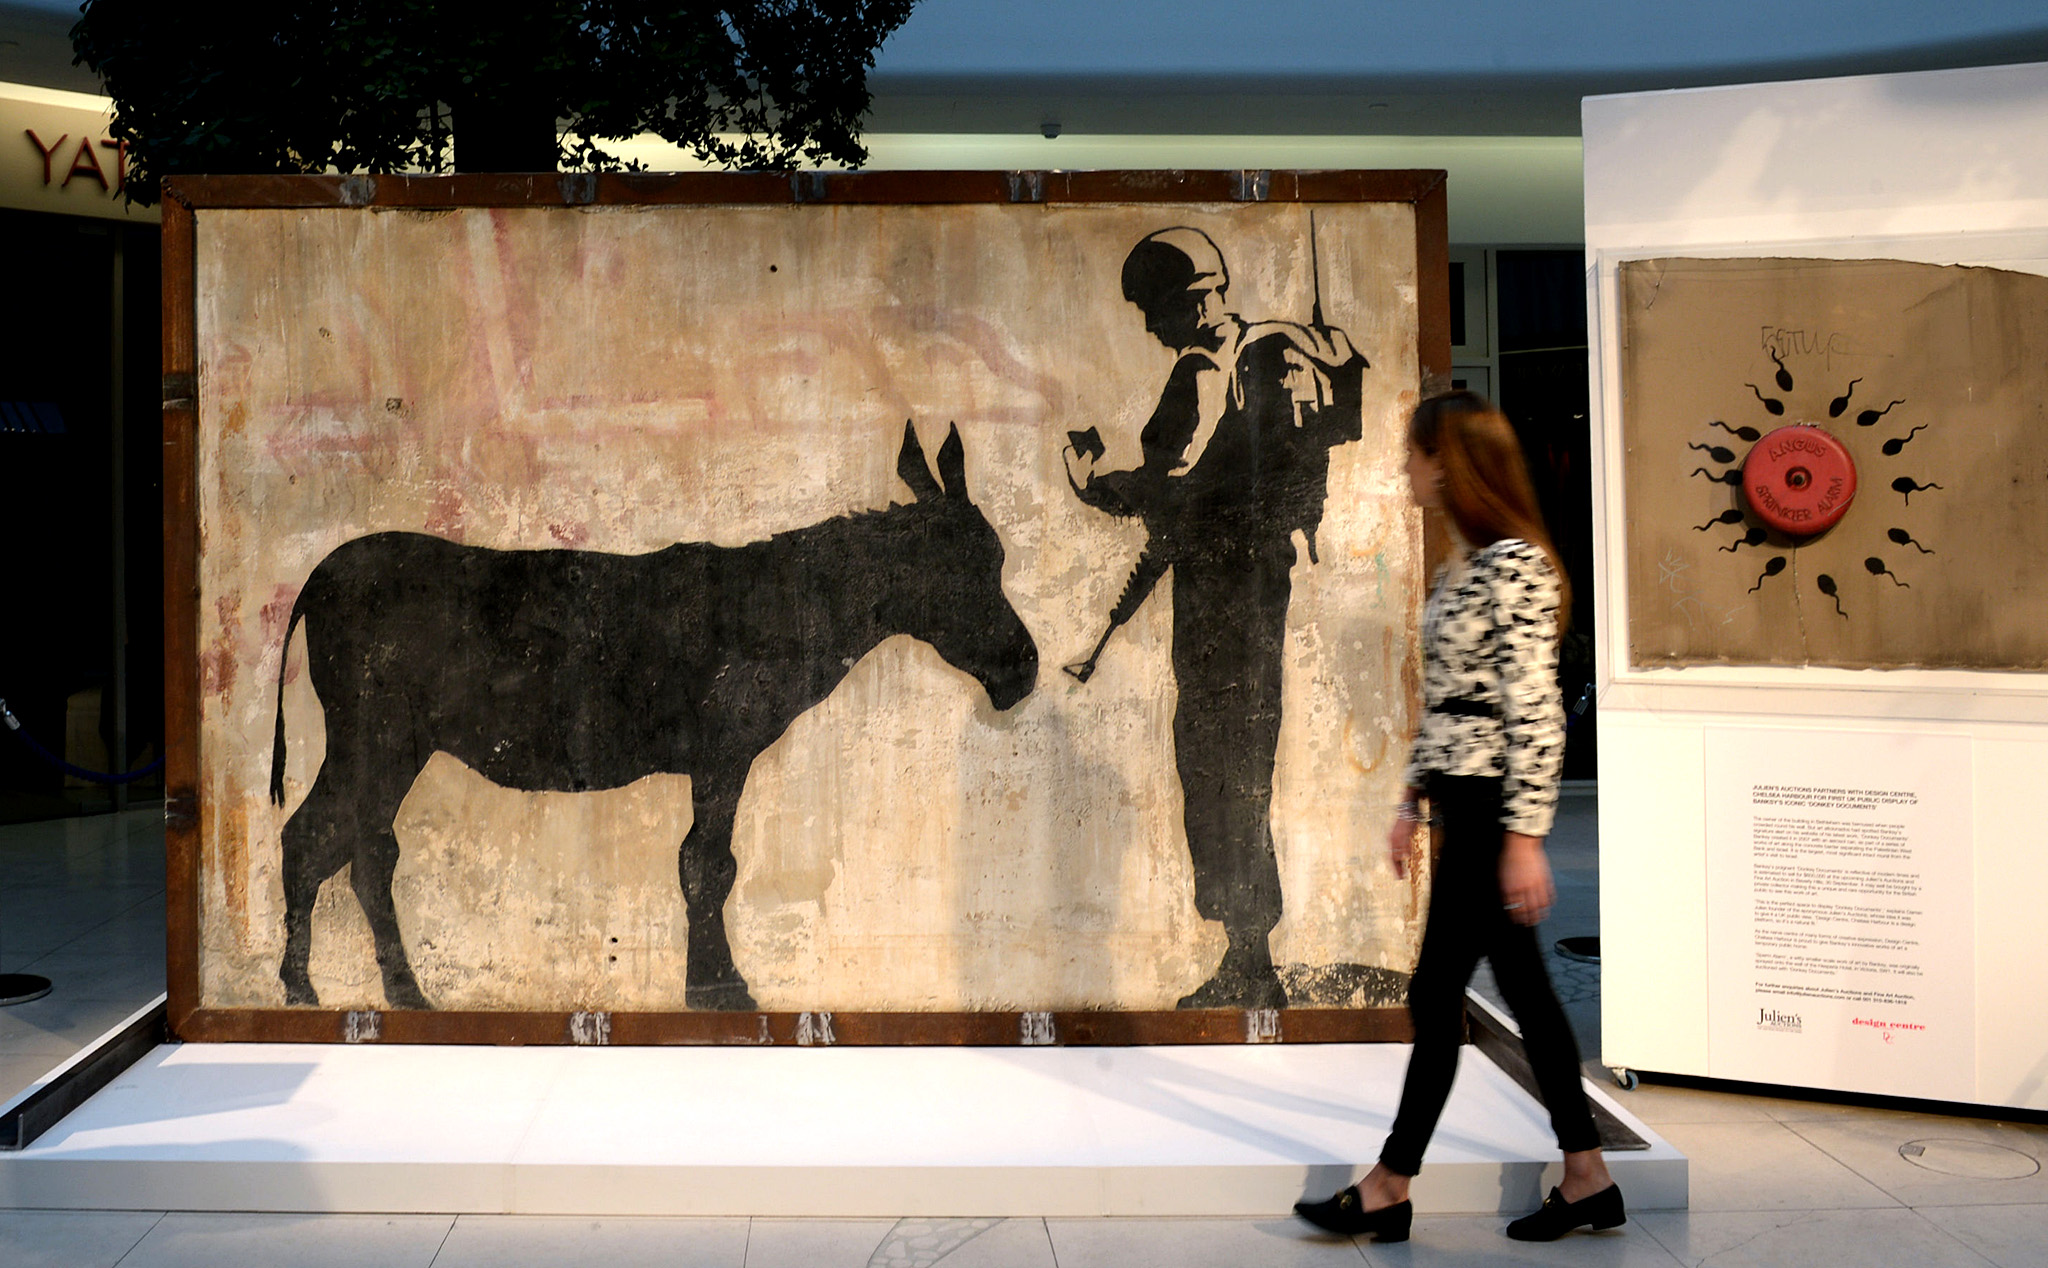 A woman views Banksy's 'Donkey Documents', an intact four ton mural from Jerusalem, in the Design Centre in Chelsea, London. PRESS ASSOCIATION Photo. Picture date: Monday September 21, 2015. Banksy created the work in 2007, as part of a series along the concrete barrier separating the Palestinian West Bank and Israel. The mural is estimated to sell for $600,000 at the forthcoming Julien's Fine Art Auction in Beverly Hills on 30 September. Photo credit should read: Anthony Devlin/PA Wire